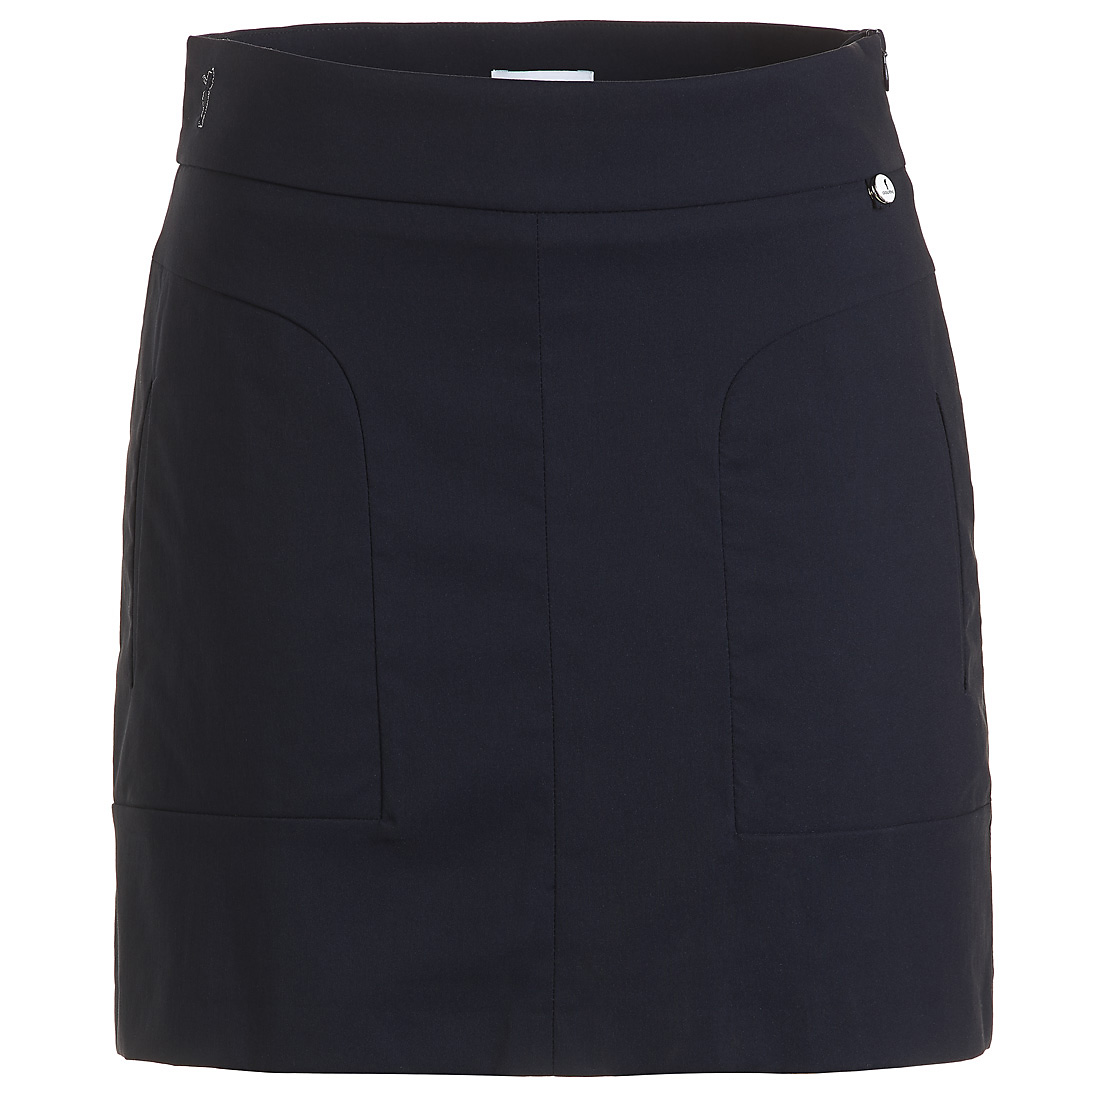 Short techno stretch golf skirt with UV protection in comfortable fit